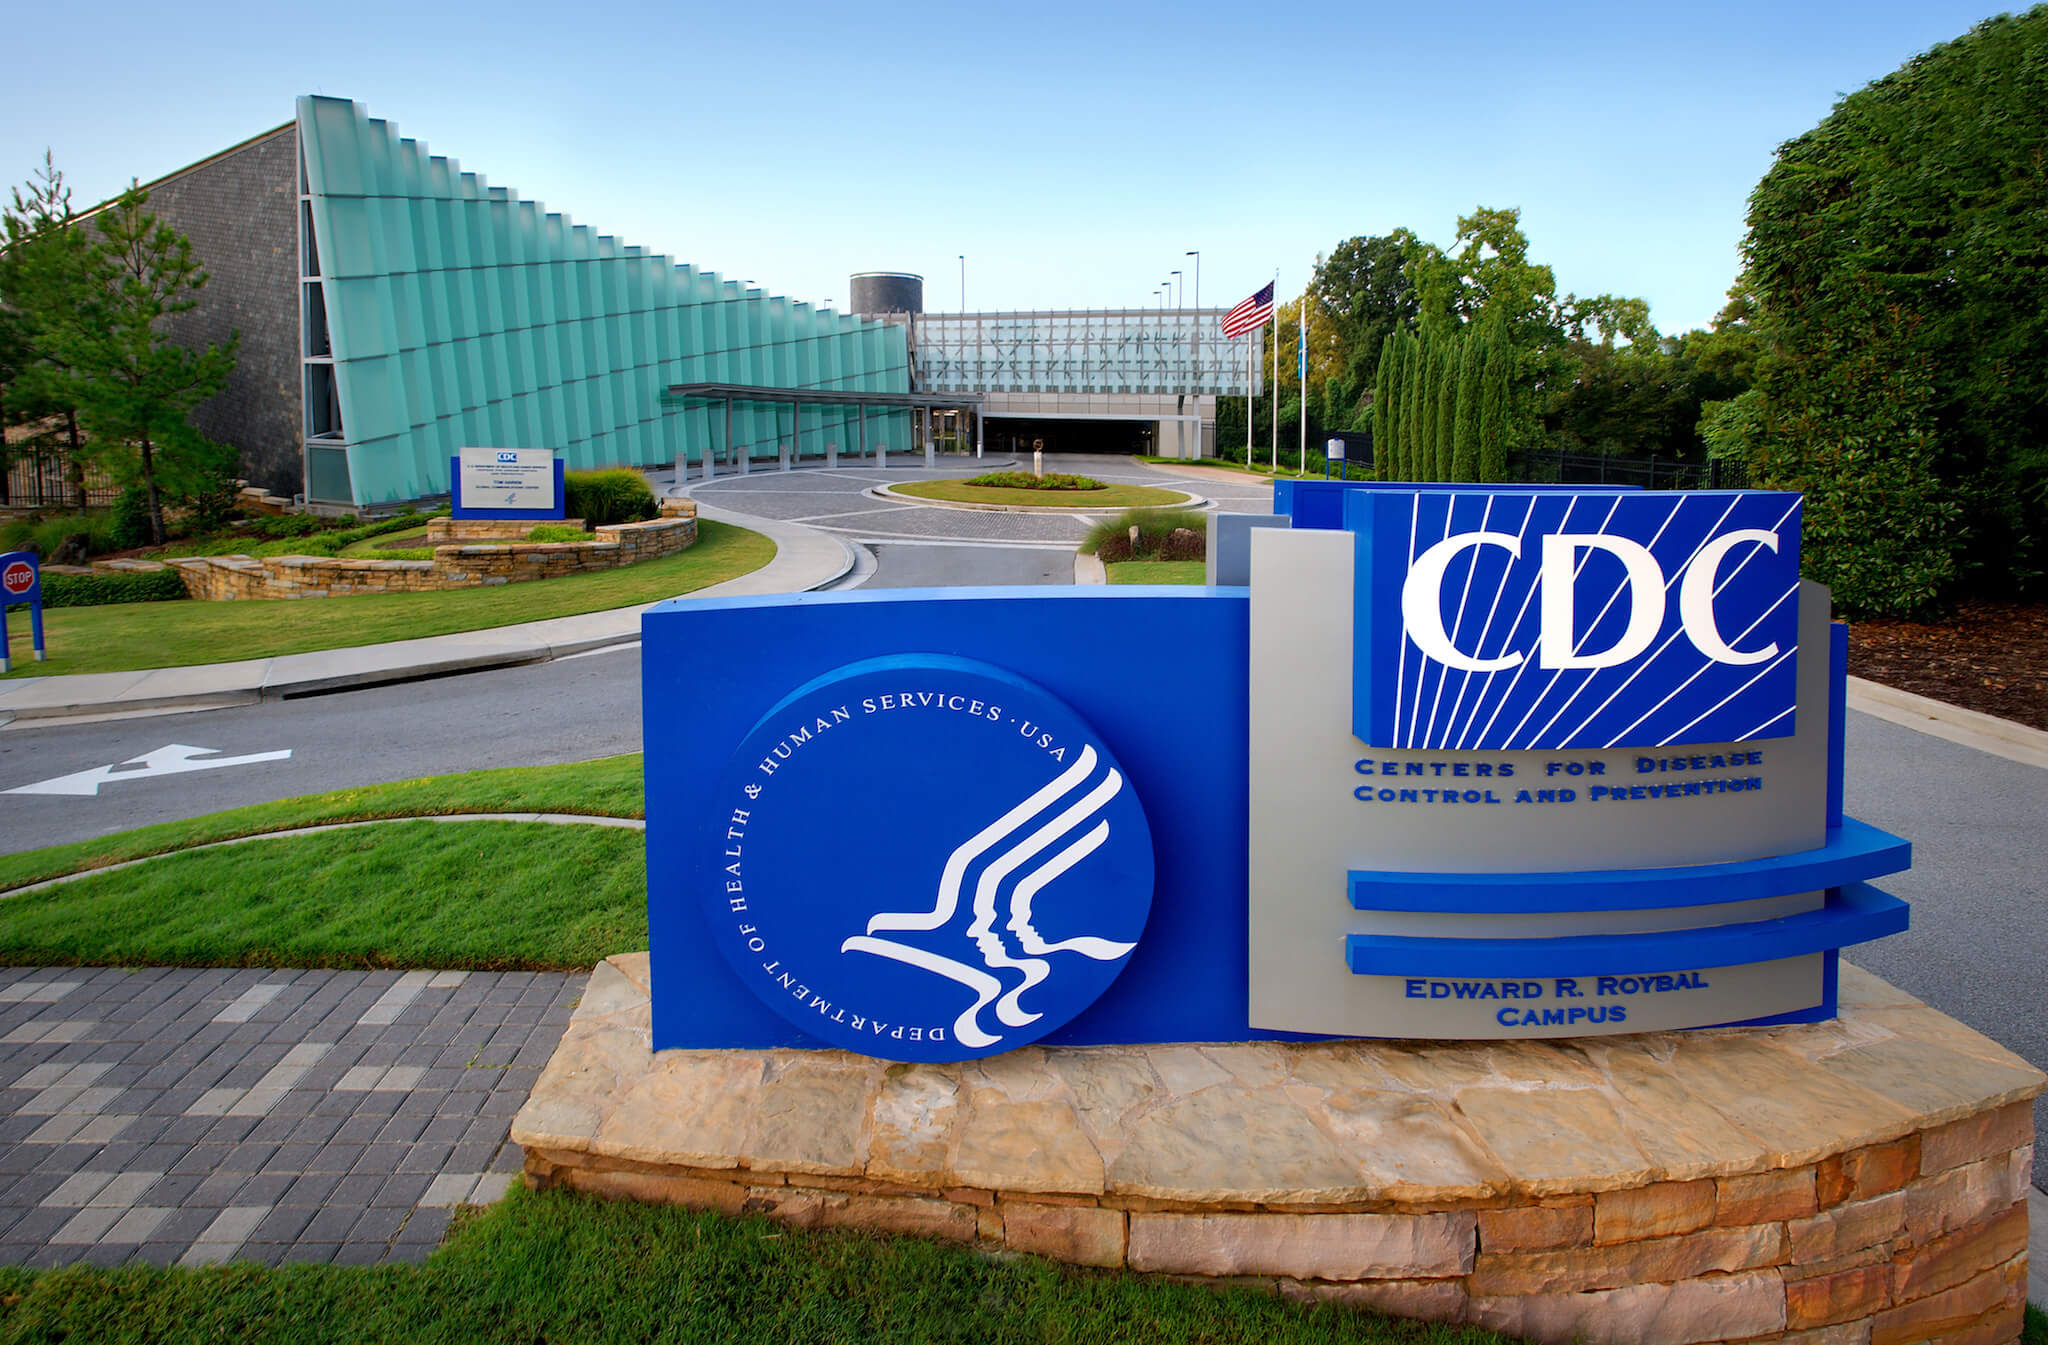 Comments on CDC's Fungal Awareness Week